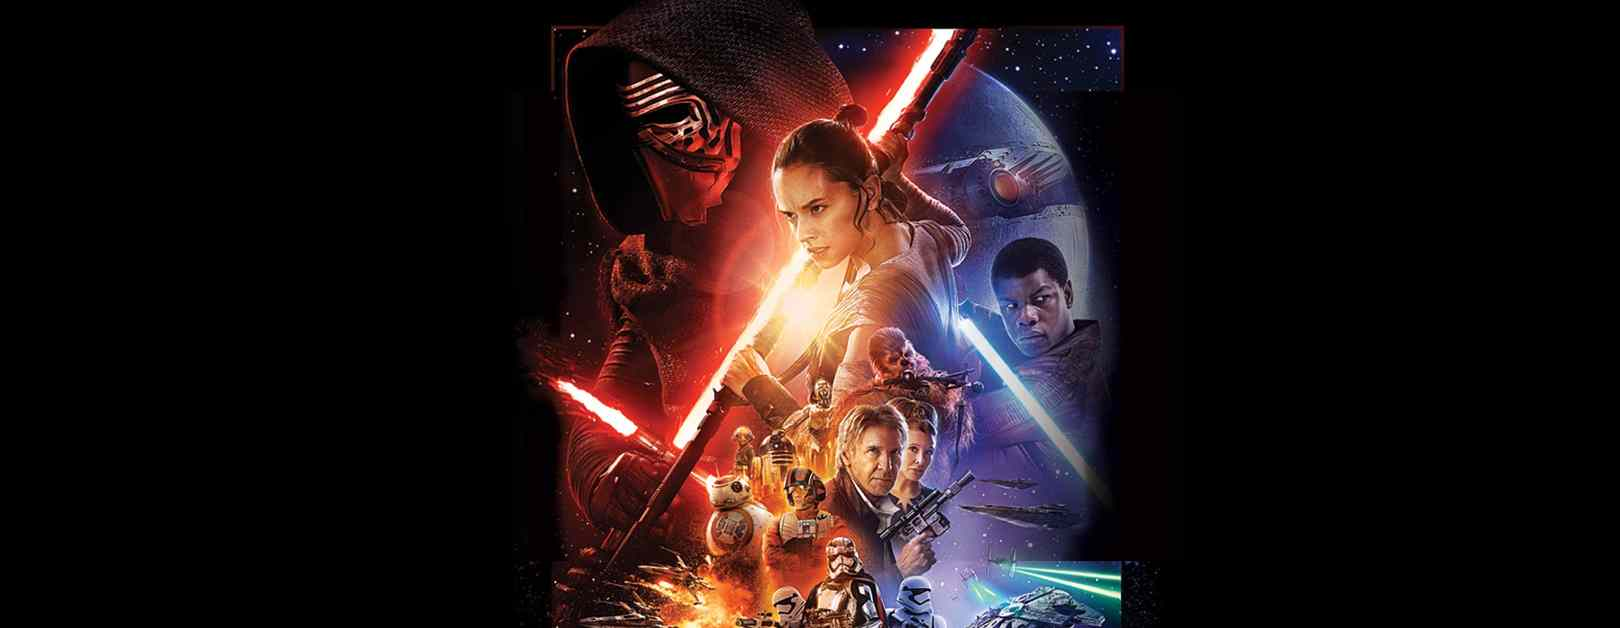 Star Wars: The Force Awakens - In Concert